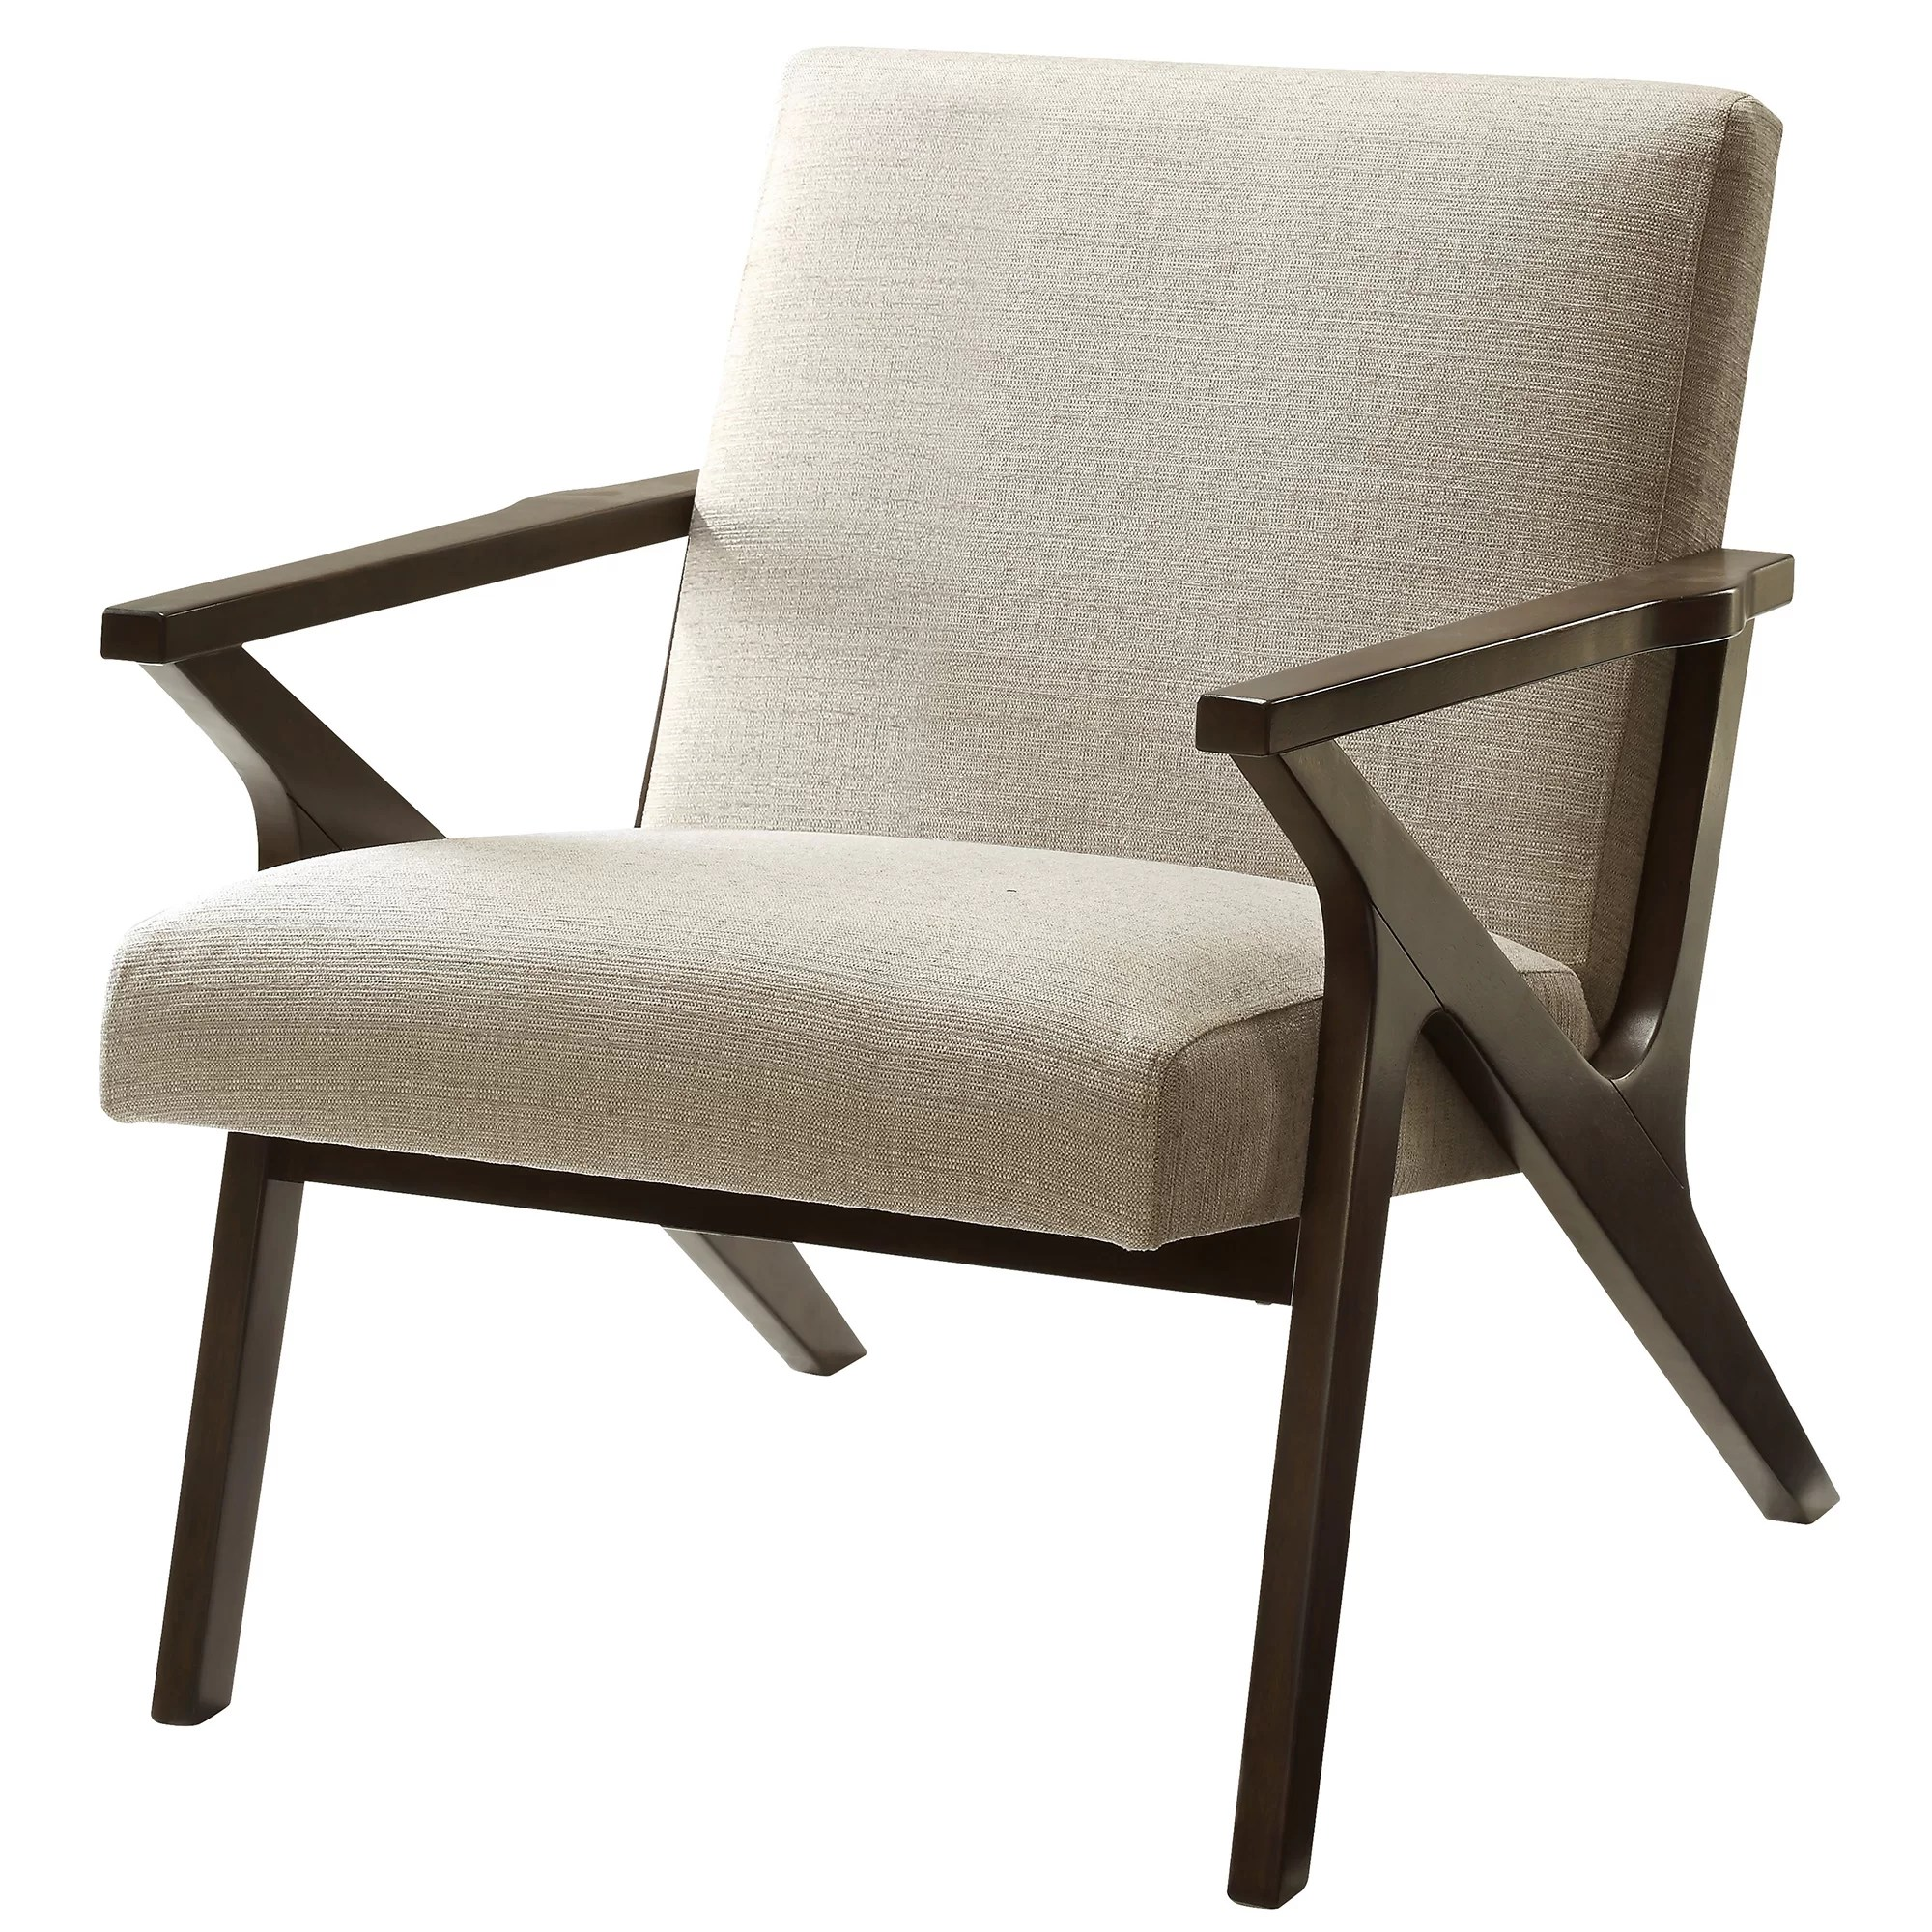 Upholstered Accent Chairs With Arms Nspire Upholstered Accent Arm Chair And Reviews Wayfair